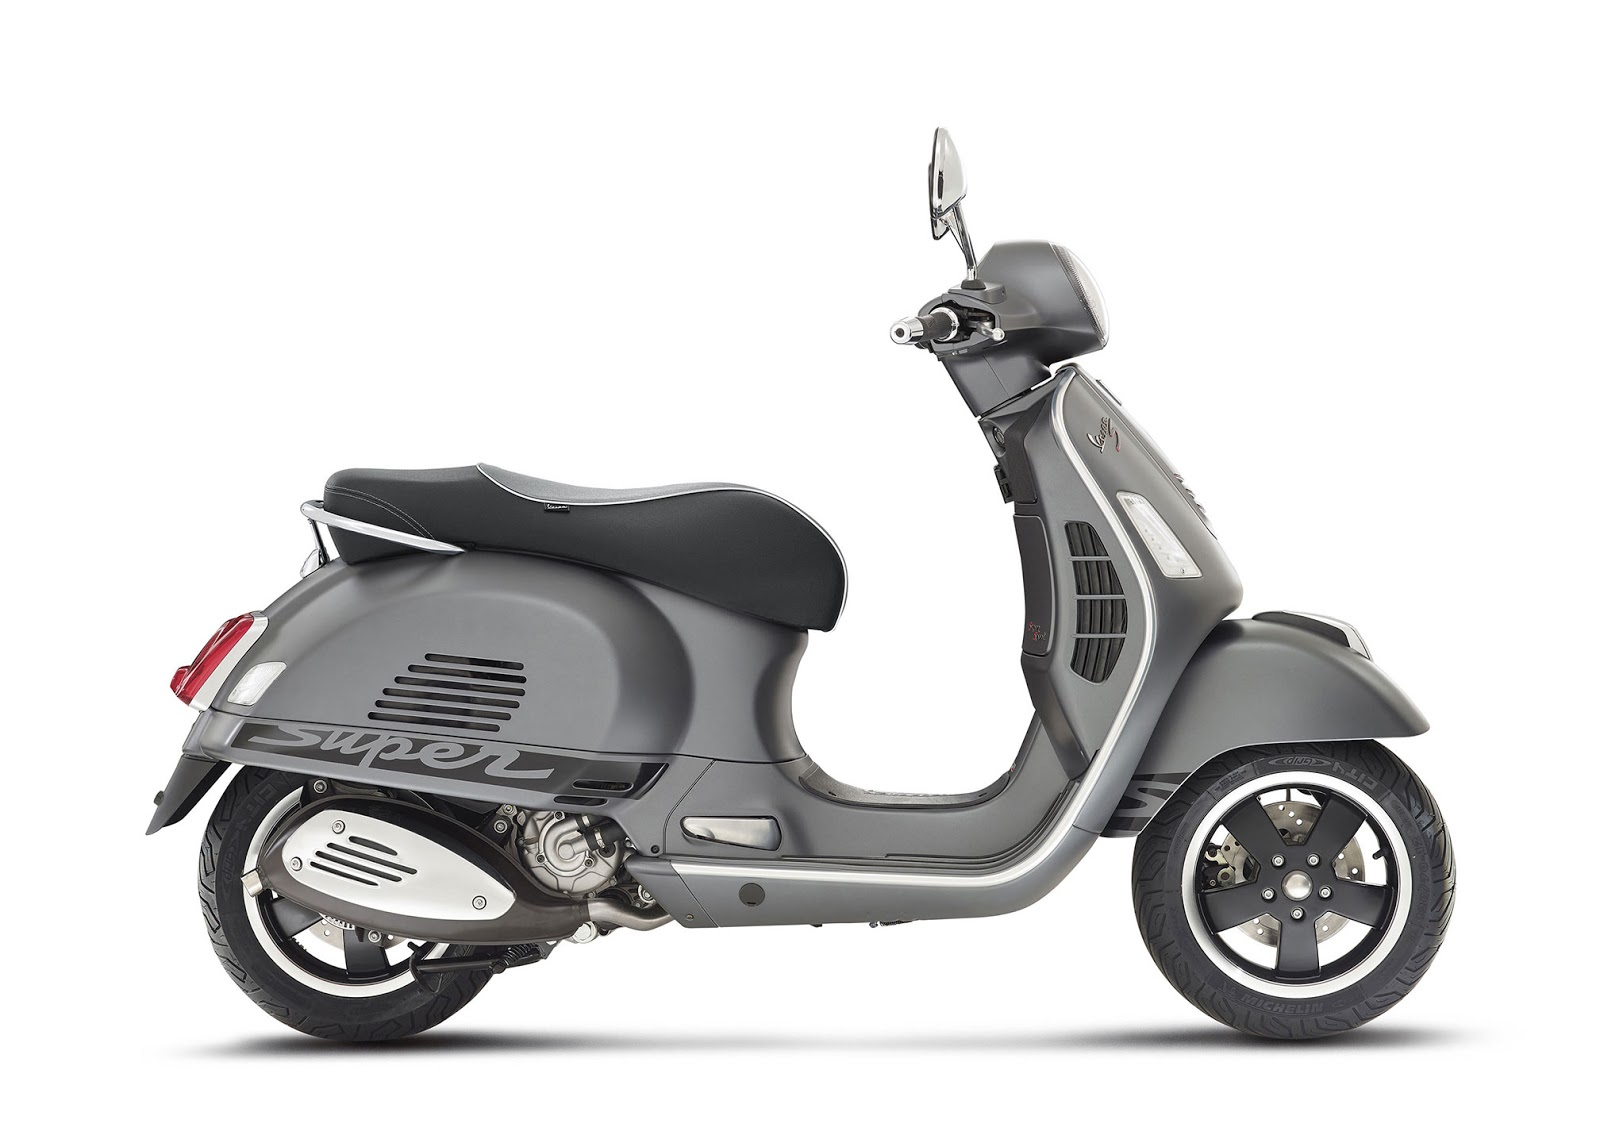 Hd wallpaper vespa -  Specs Price And All Angle Our Device Hd Widescreen Use To Hd Image Hd Wallpaper And 4k Ultra High Qaulity Pictures And Download To This Site